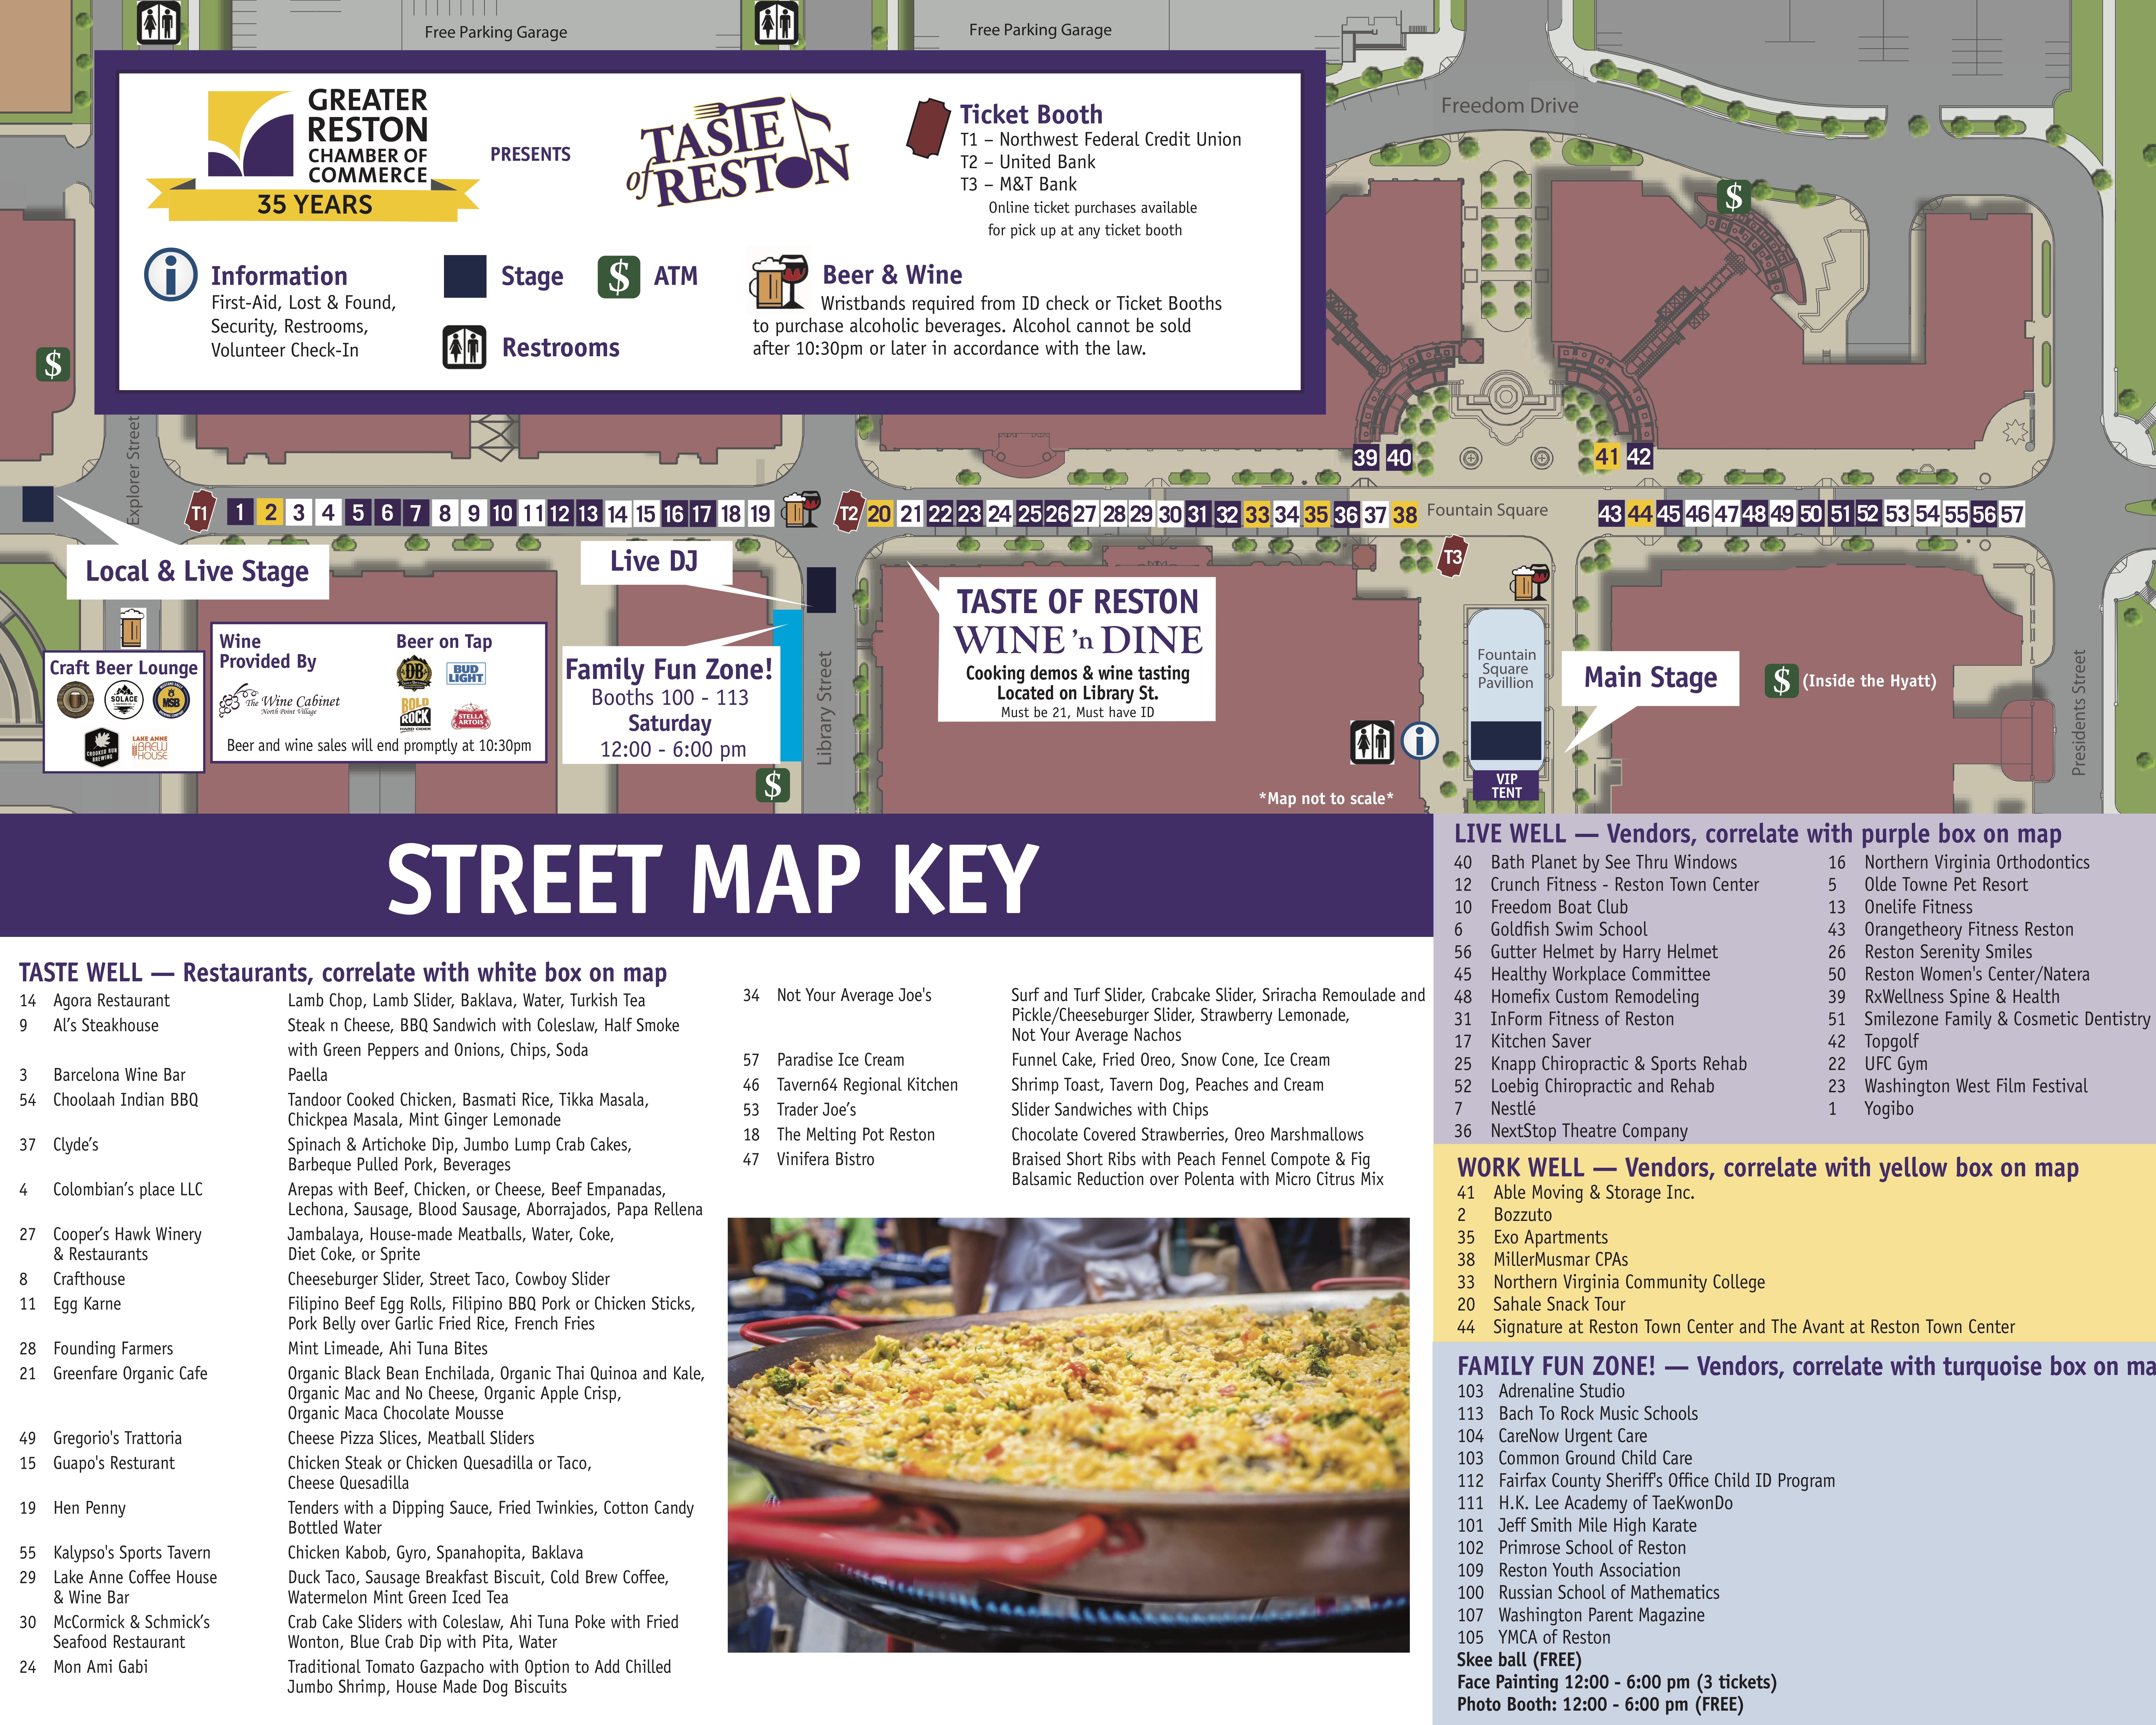 Taste of Reston Event Map